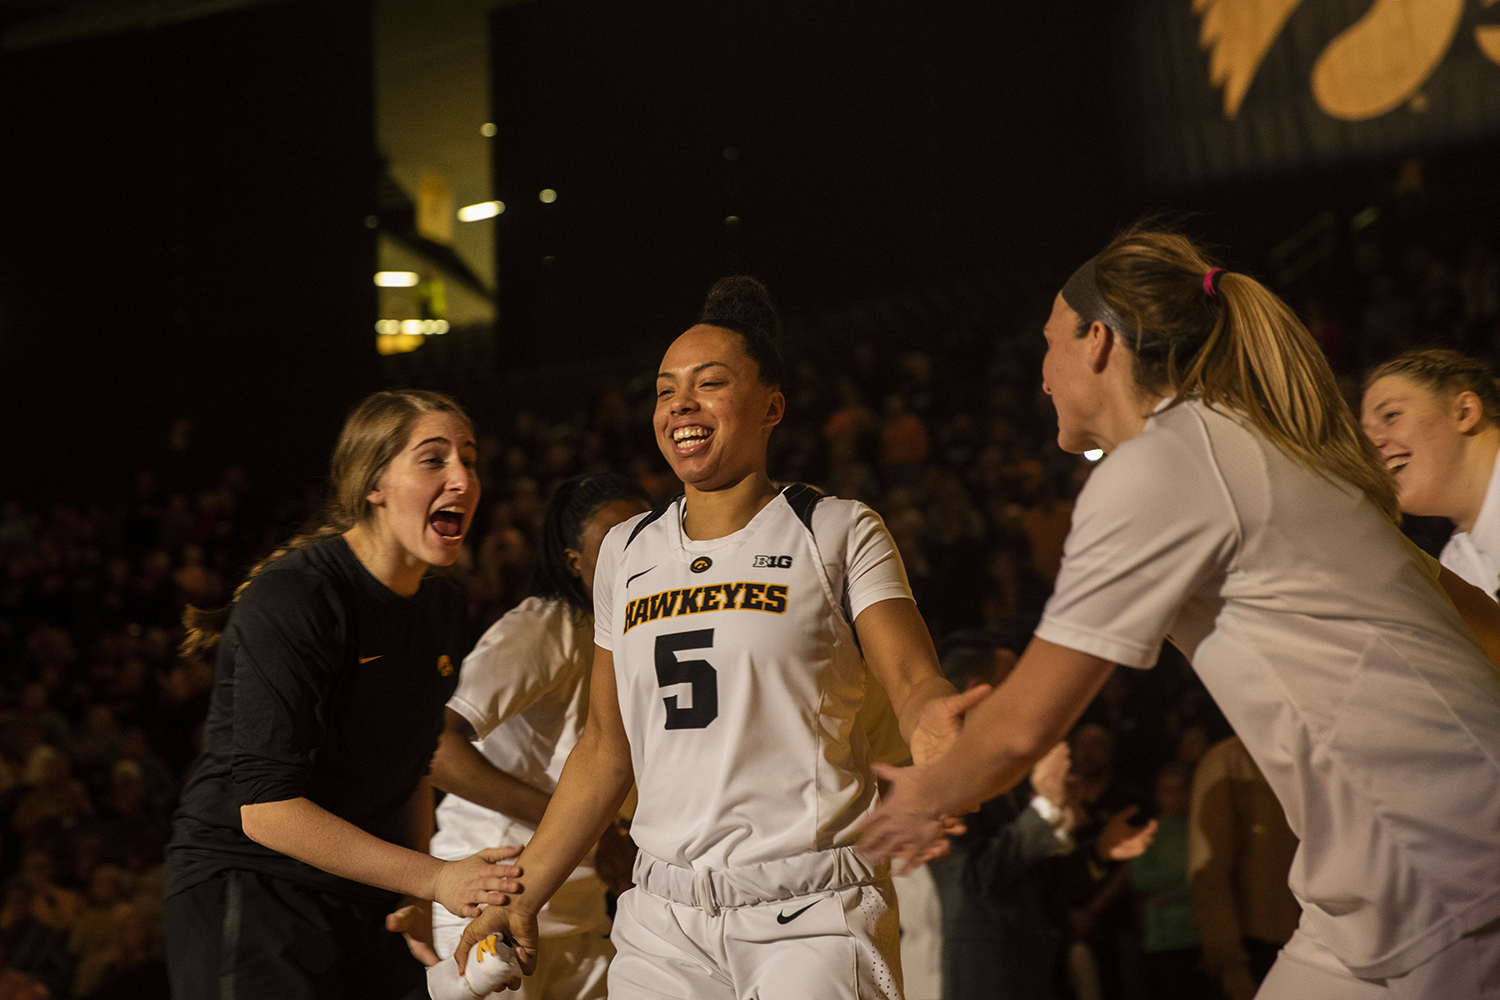 Iowa+guard+Alexis+Sevillian+high+fives+teammates+during+introductions+during+the+Iowa%2FIllinois+women%27s+basketball+game+at+Carver-Hawkeye+Arena+on+Thursday%2C+February+14%2C+2019.+The+Hawkeyes+defeated+the+Fighting+Illini%2C+88-66.+